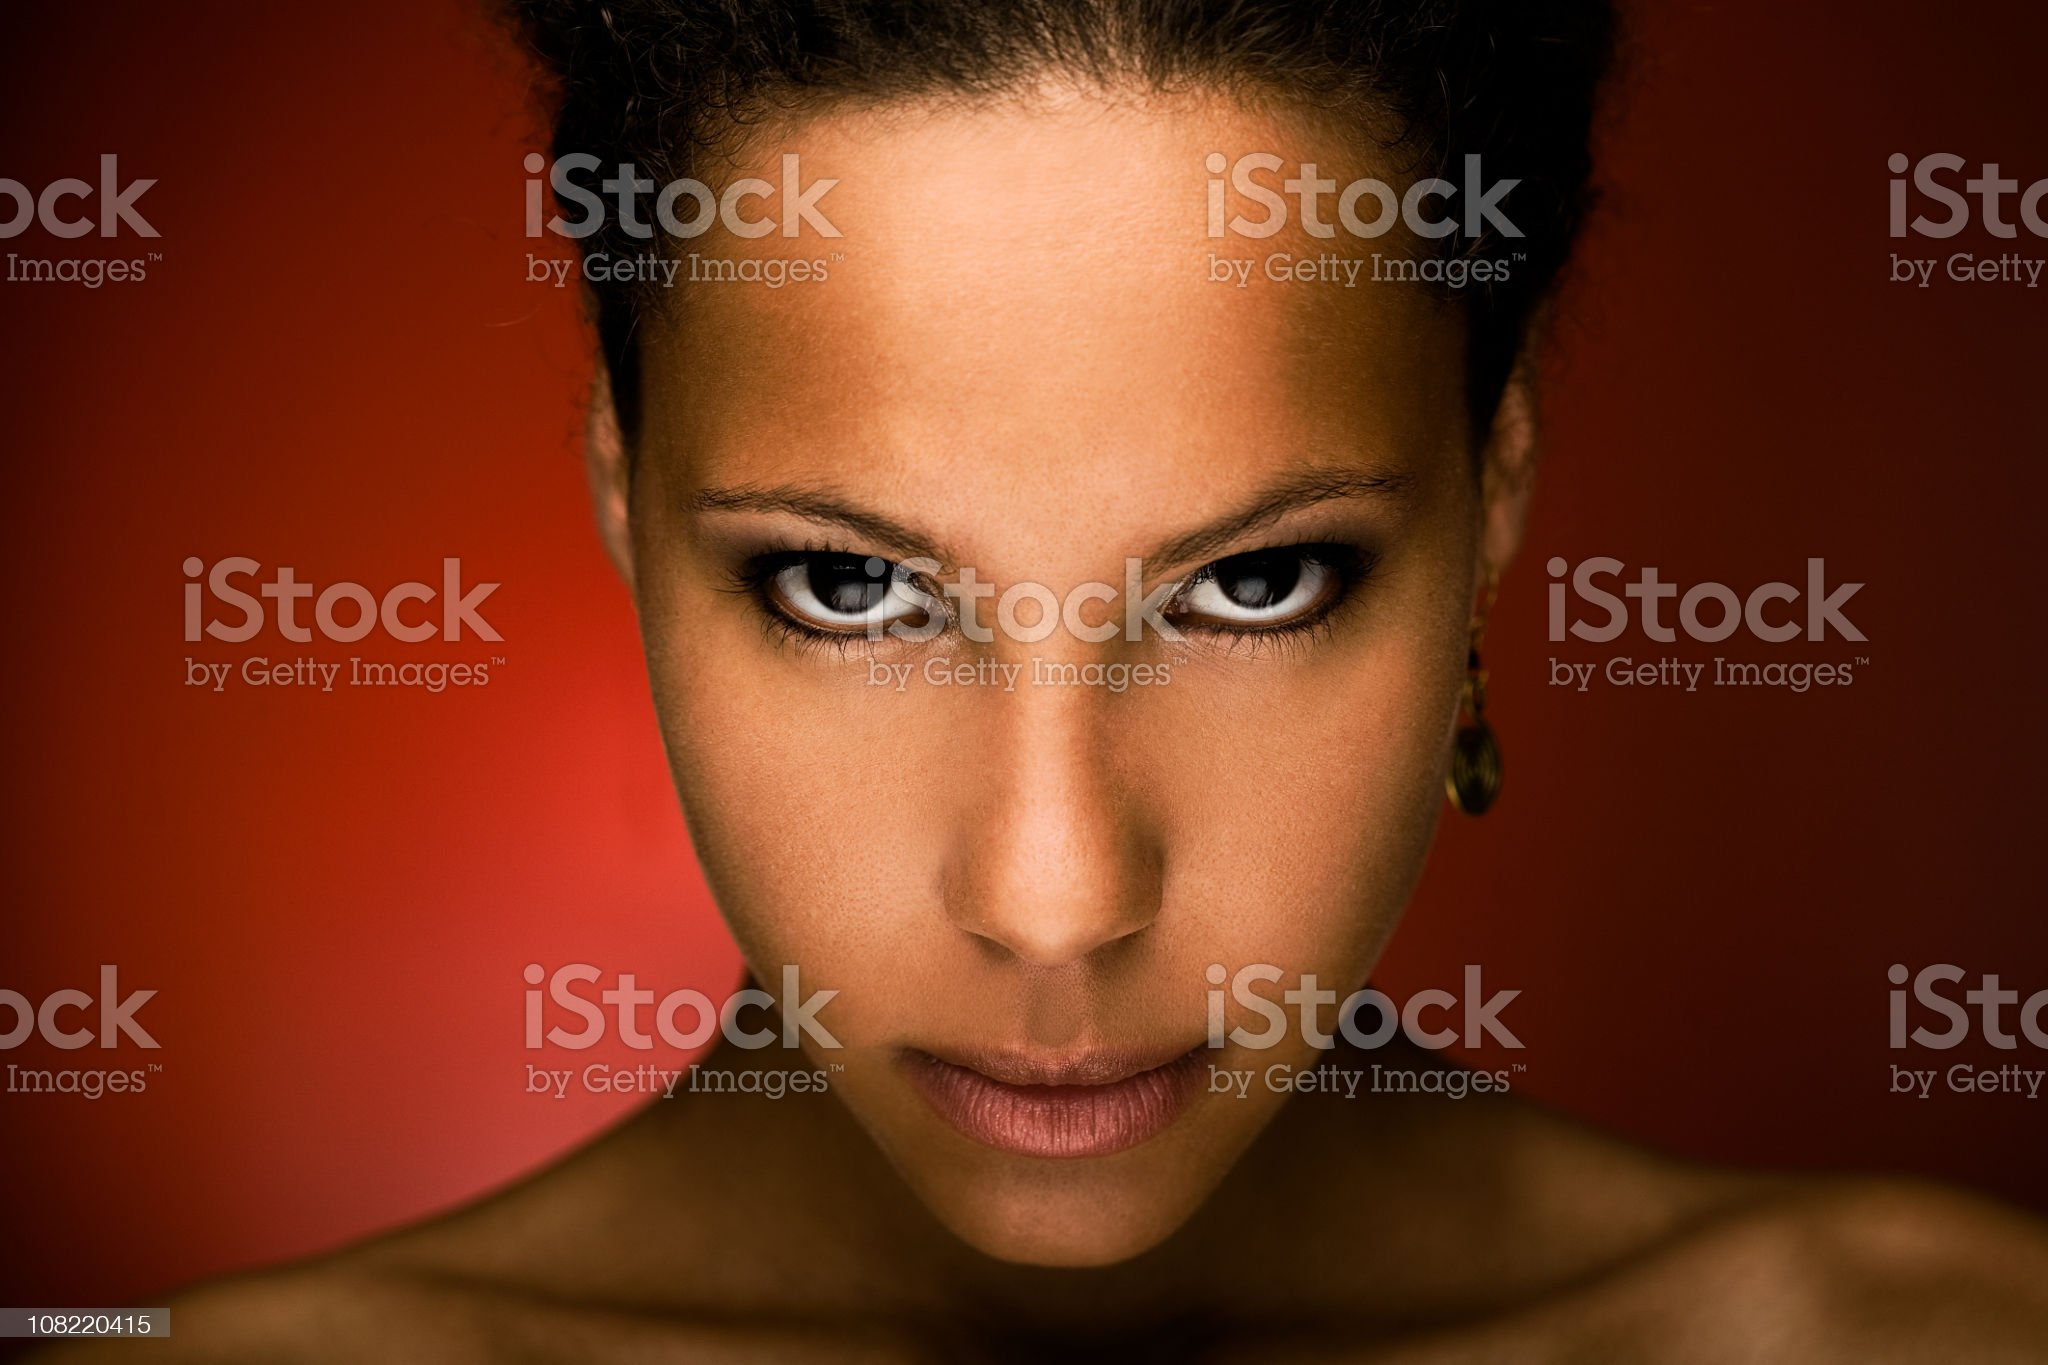 Portrait of Woman Staring at Camera royalty-free stock photo